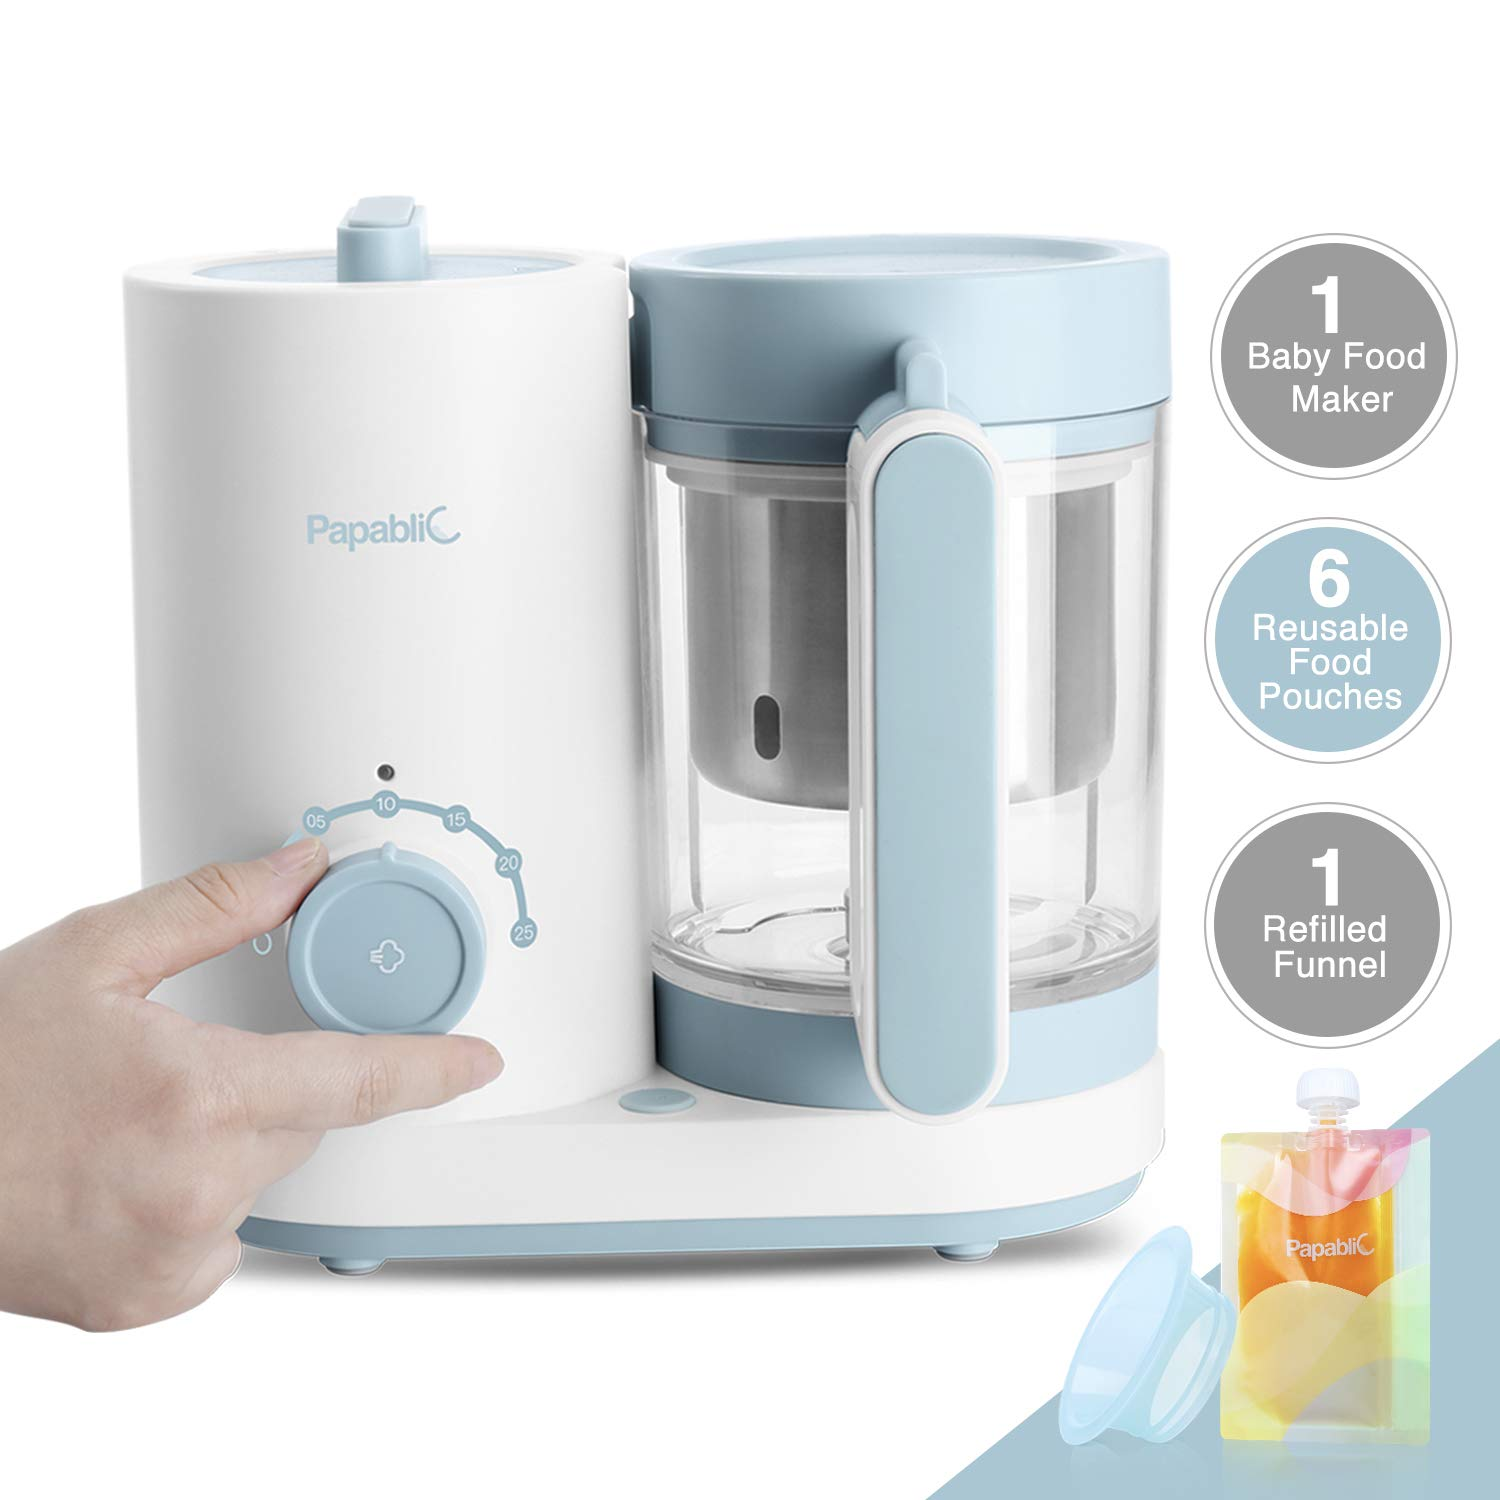 Papablic All-in-1 Baby Food Maker - Steam Cooker & Blender, Puree Grinder, Comes with 6 Reusable Meal Storage Pouches, Stainless Steel Steam Basket and Rice Cooker